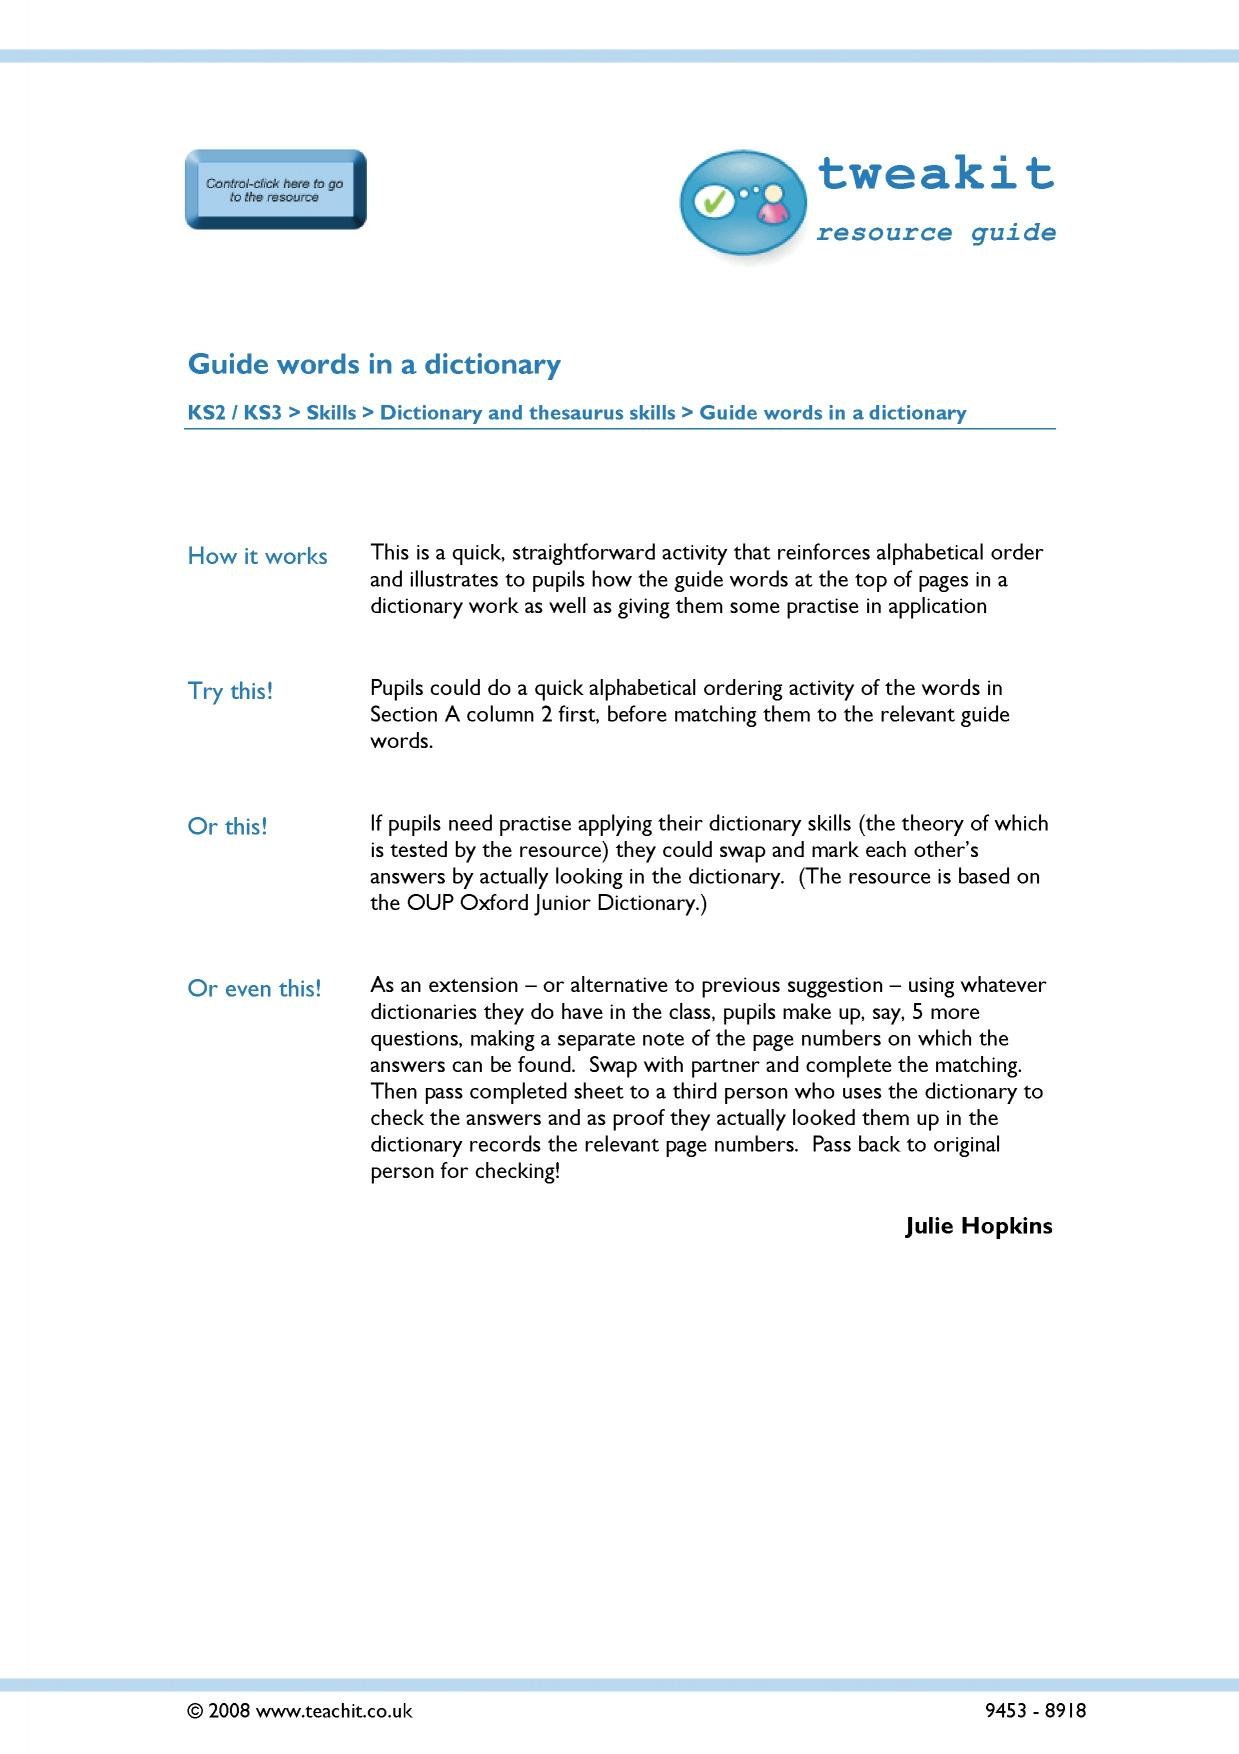 worksheet Dictionary Skills Worksheet ks3 dictionary skills teachit english 2 preview